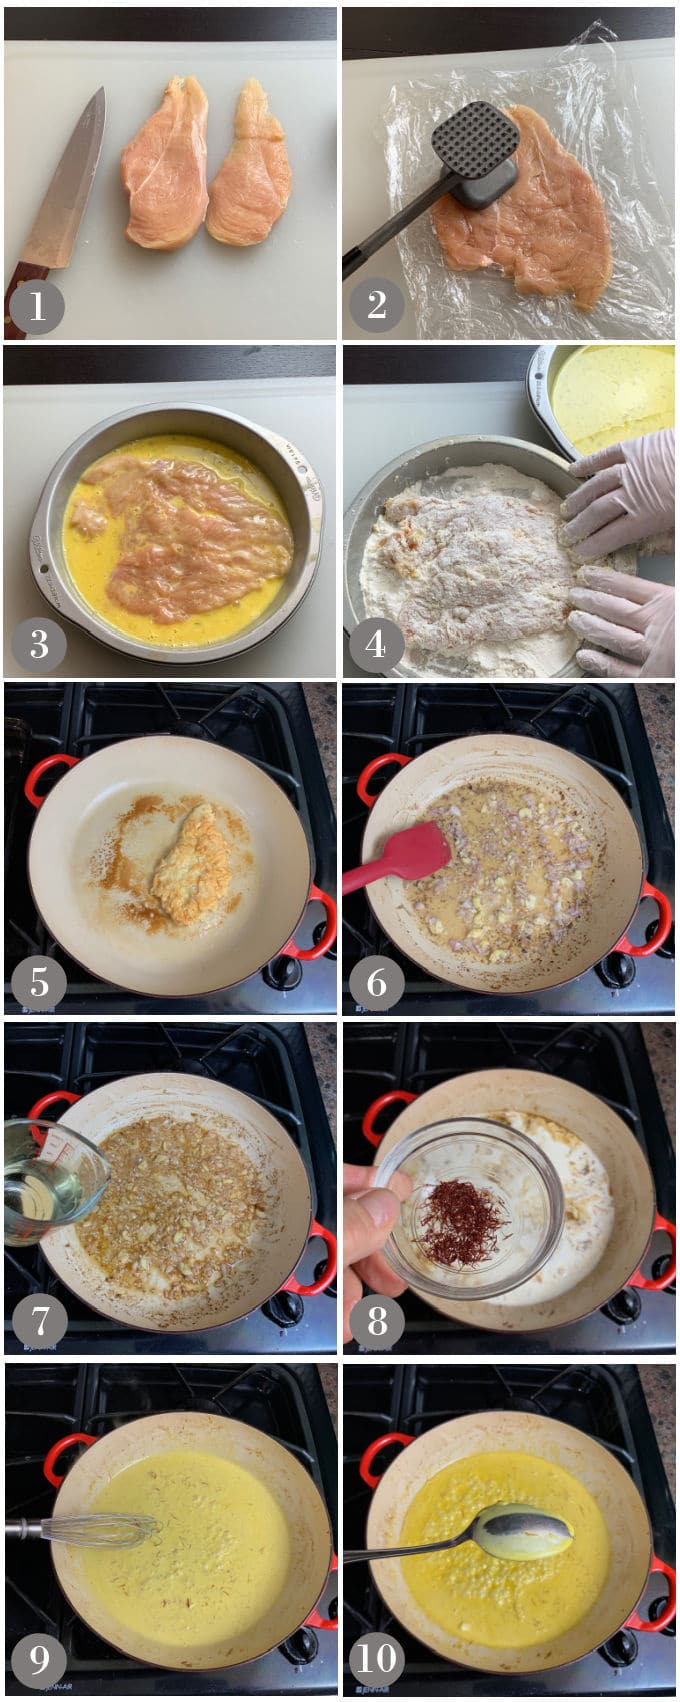 A series of photos showing the steps to make a lightly breaded chicken in creamy saffron sauce.